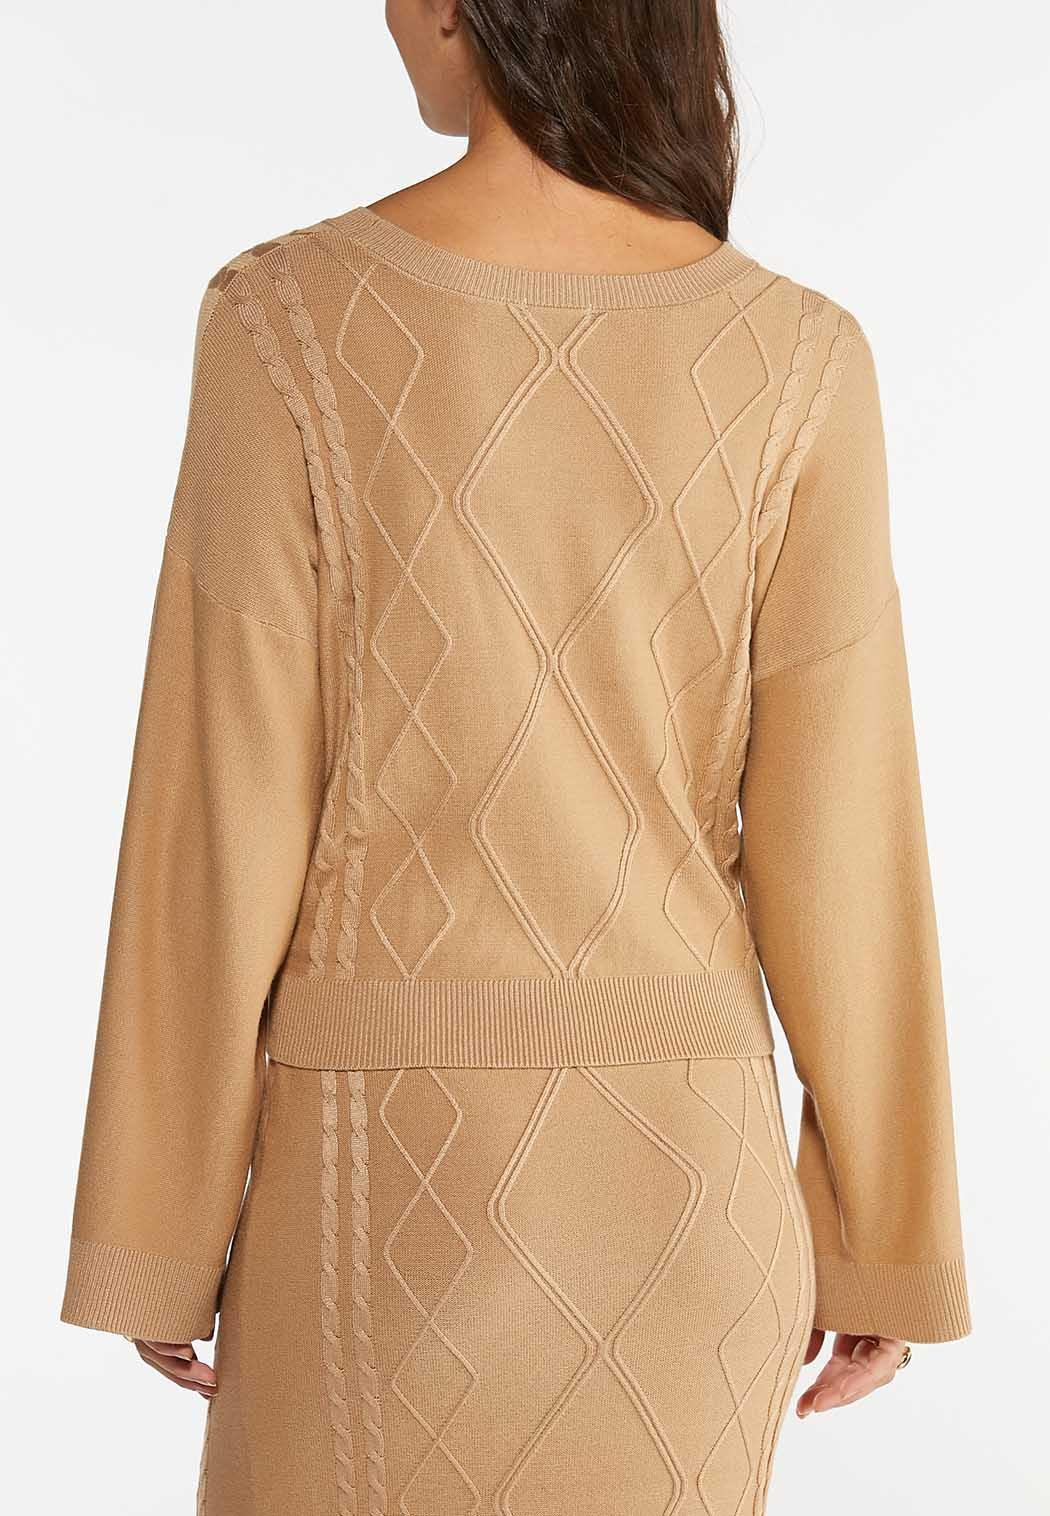 Plus Size Caramel Cable Knit Sweater (Item #44404254)